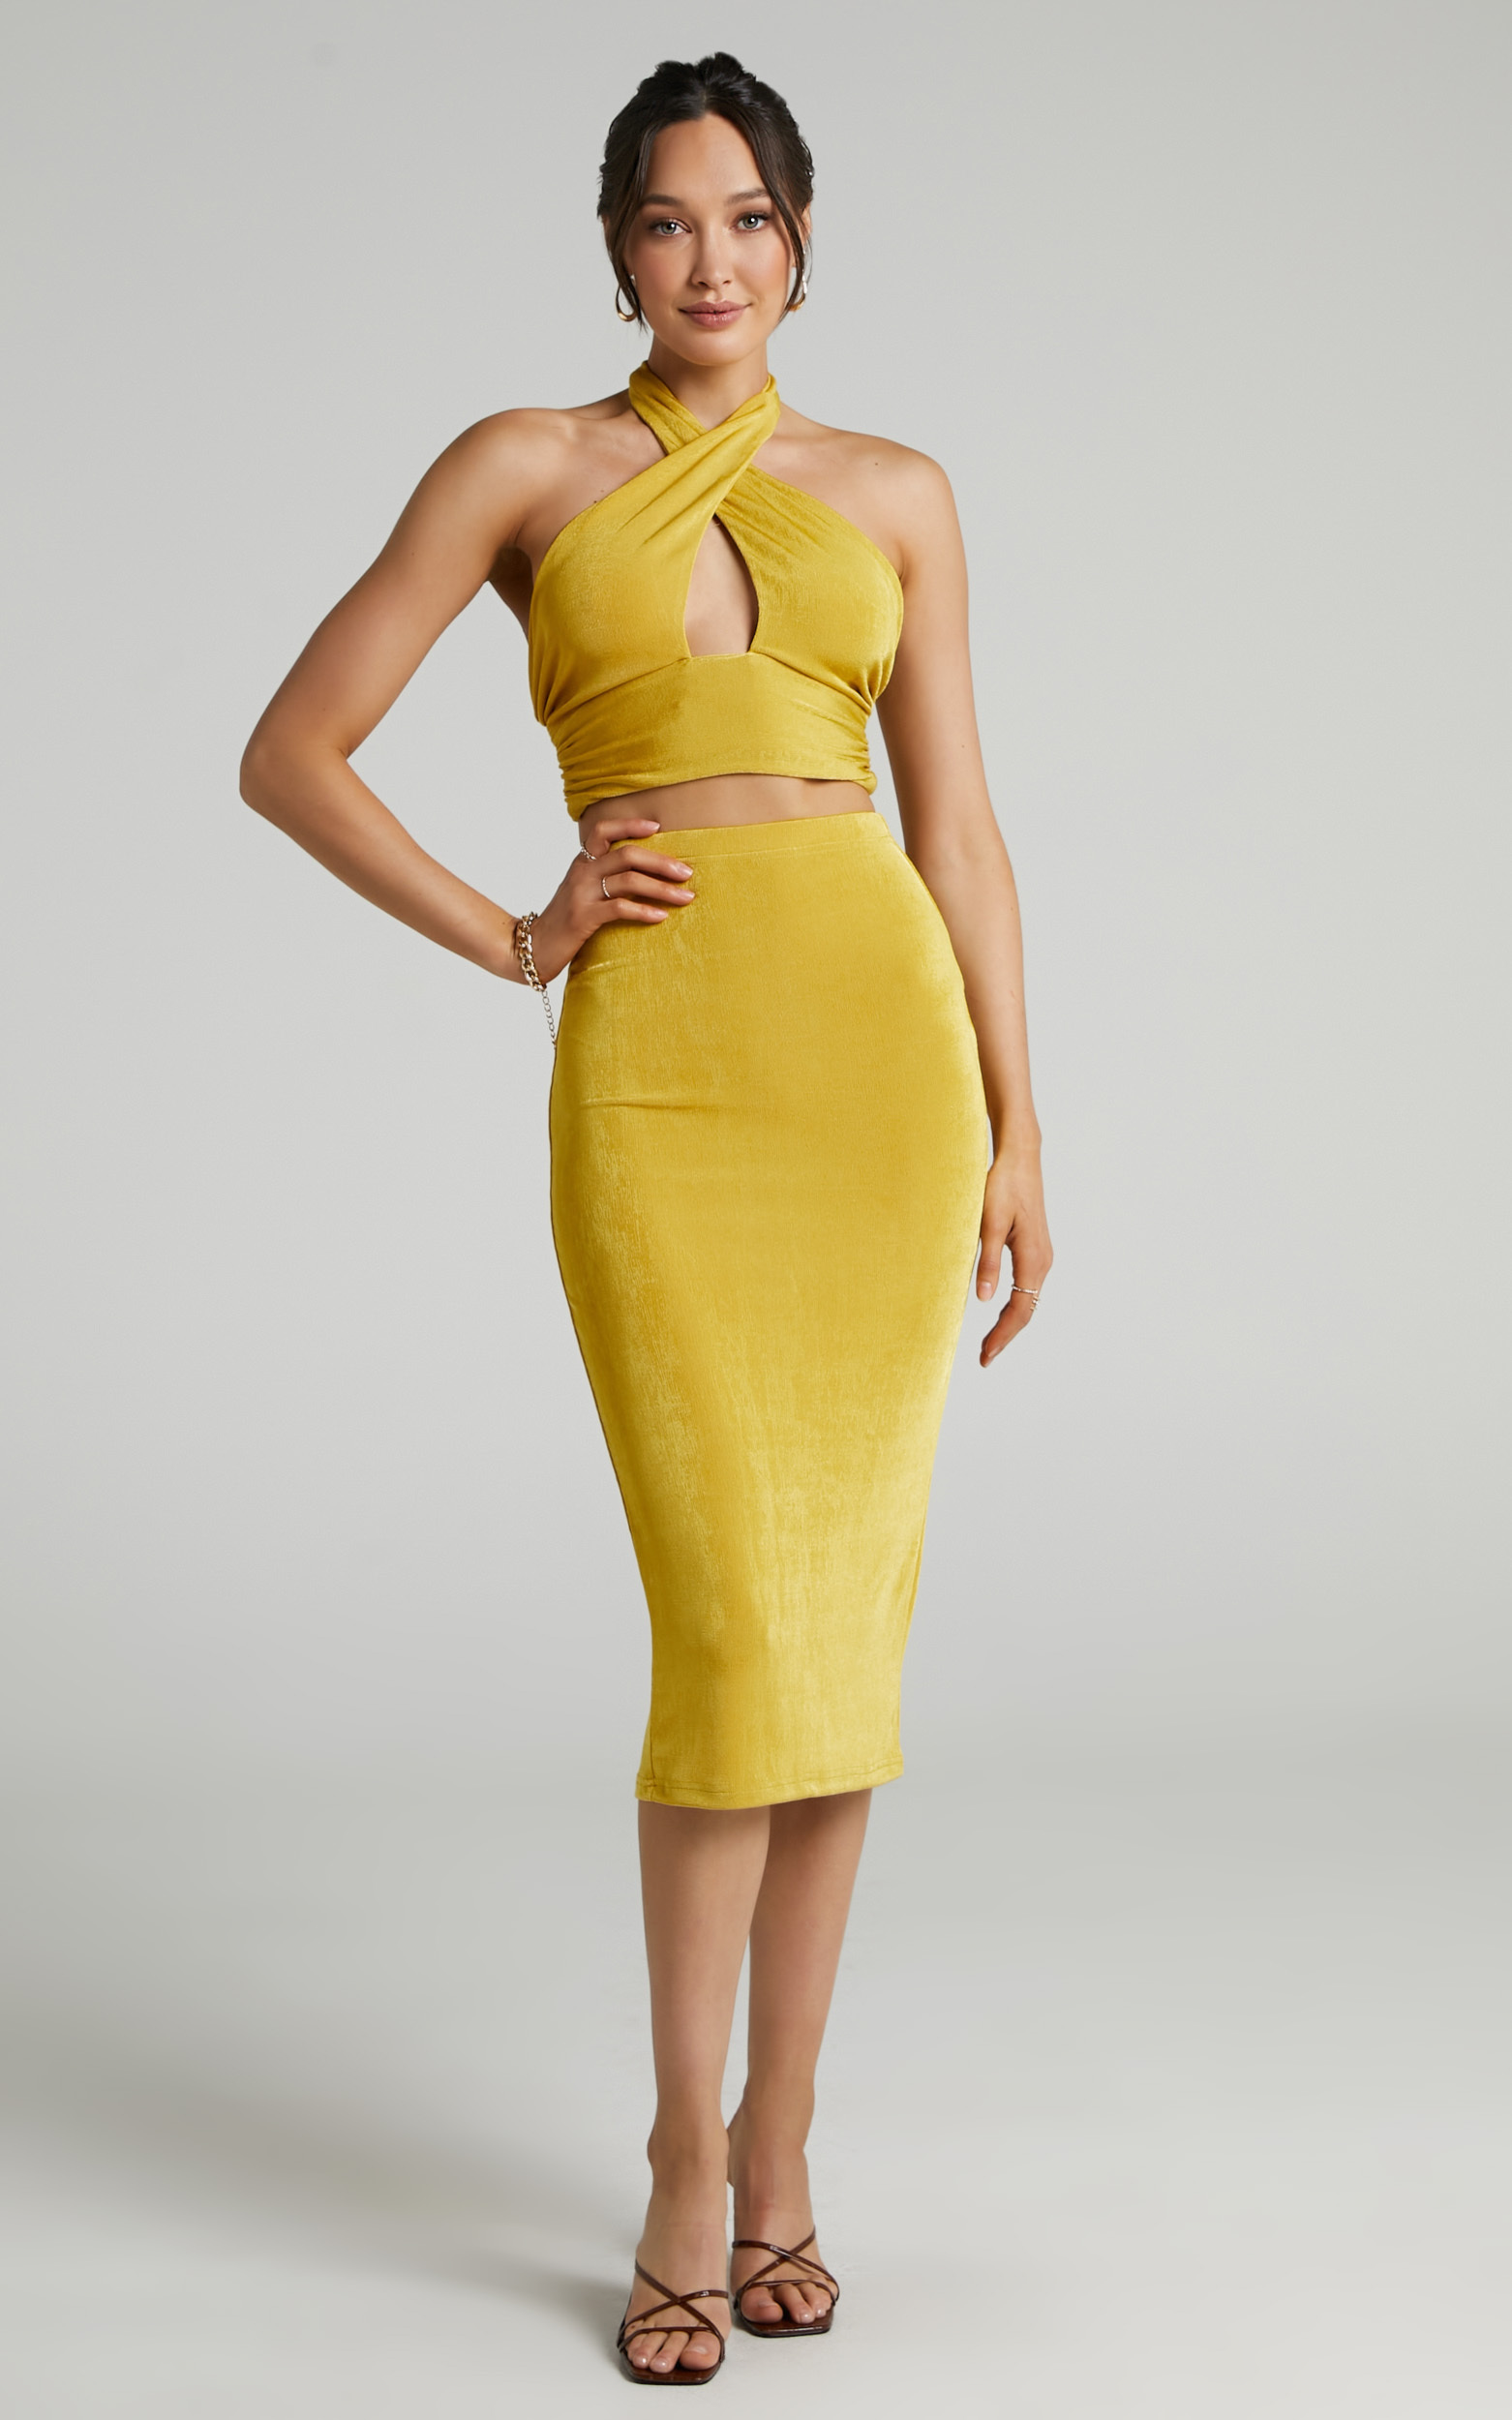 Runaway The Label - Letty Top in Butterscotch - L, YEL1, hi-res image number null